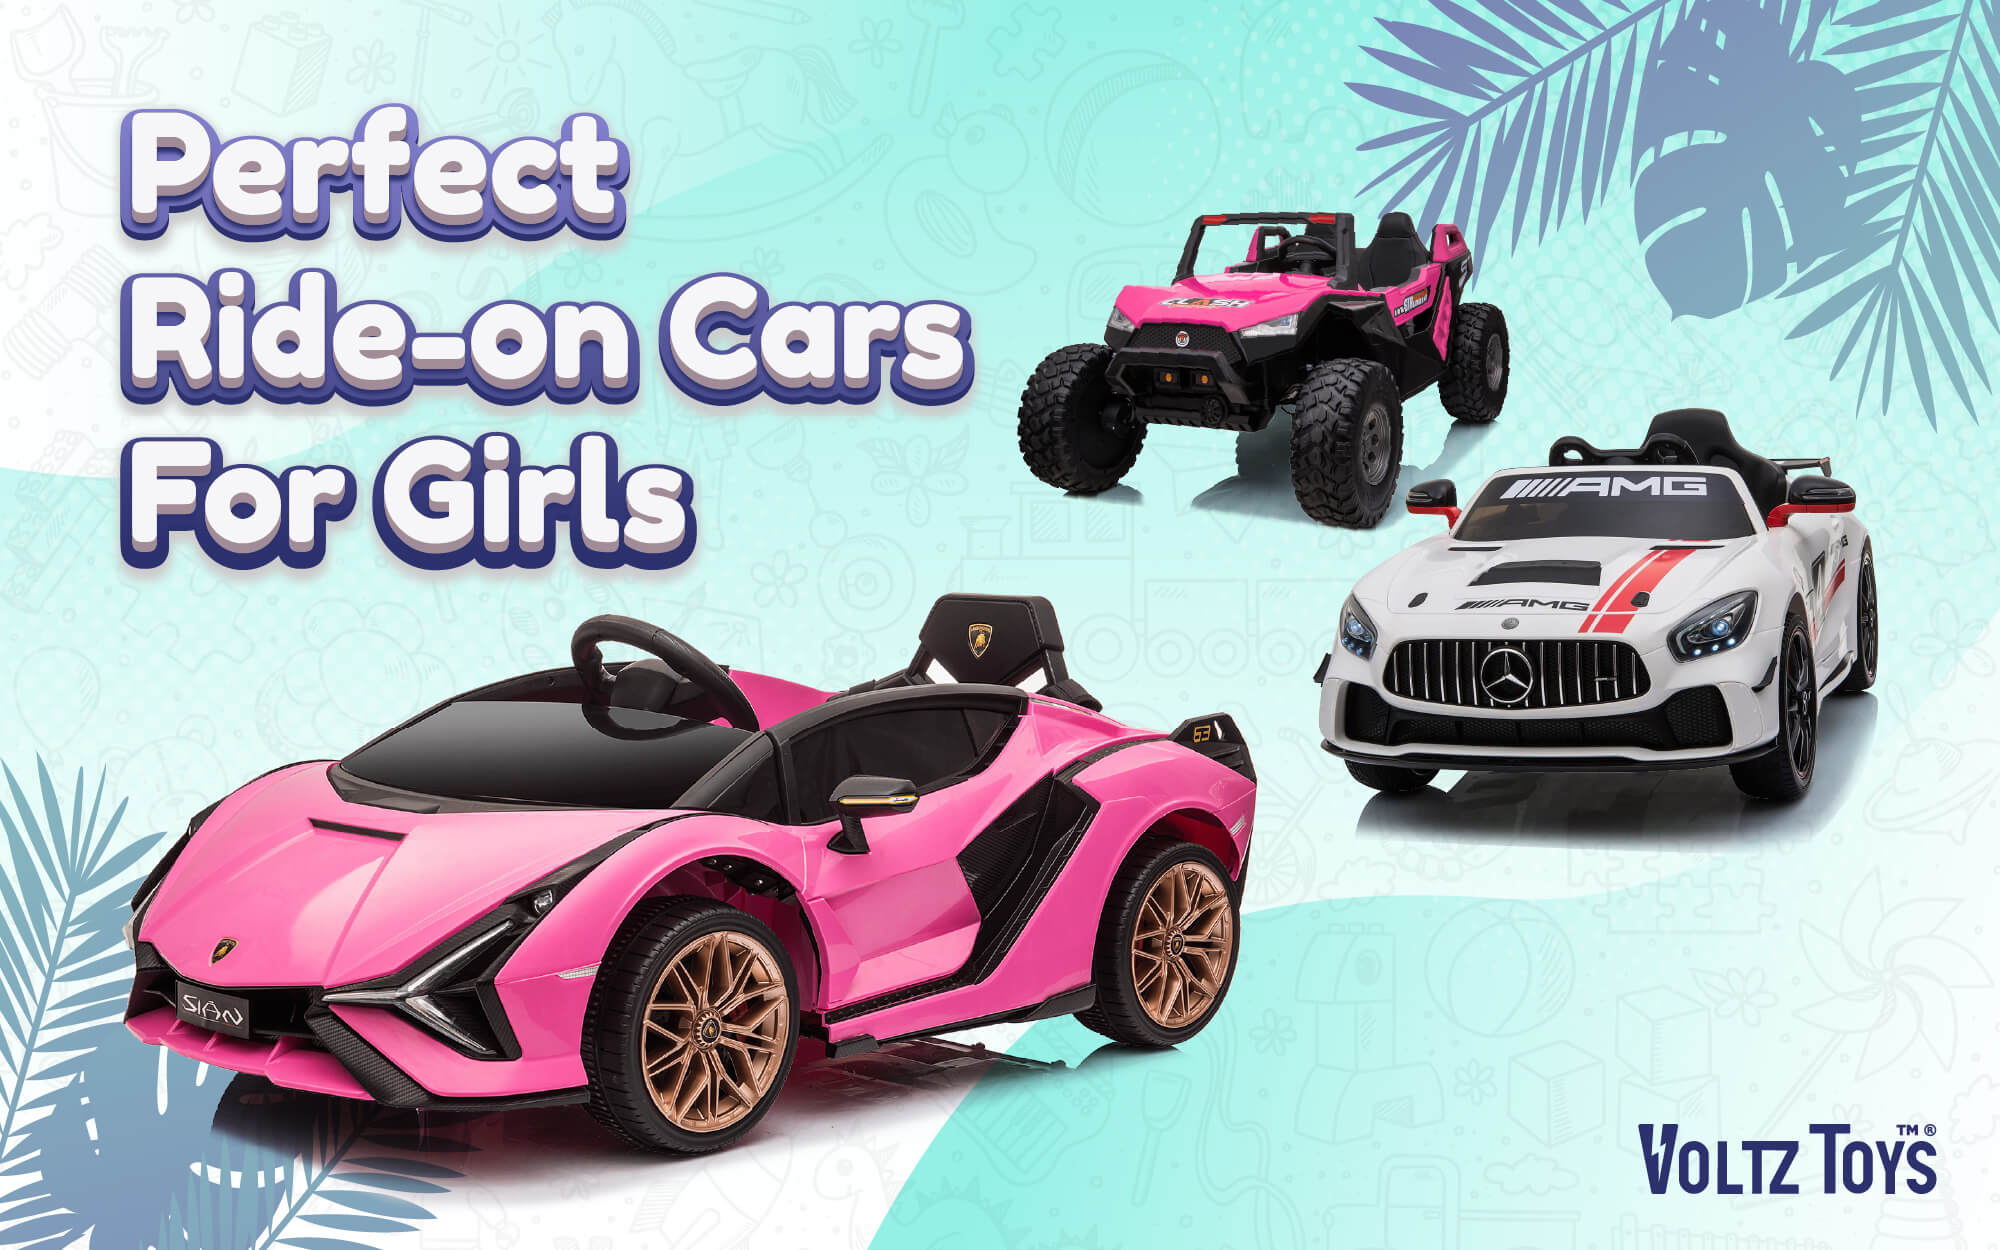 Perfect Ride-On Cars for Girls, Voltz Toys